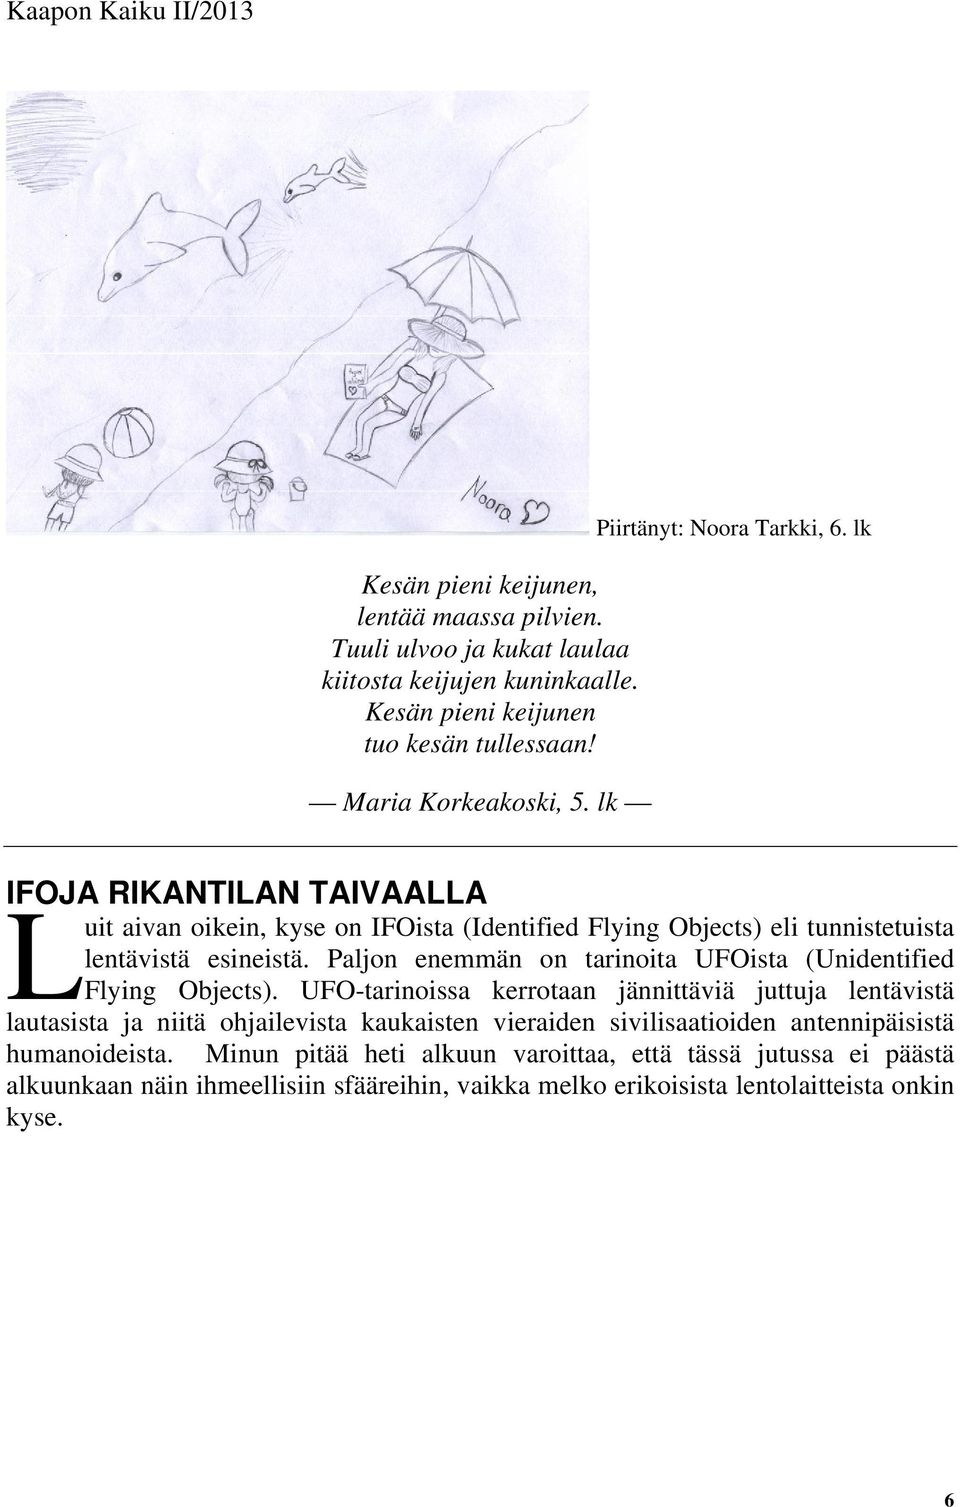 Paljon enemmän on tarinoita UFOista (Unidentified Flying Objects).